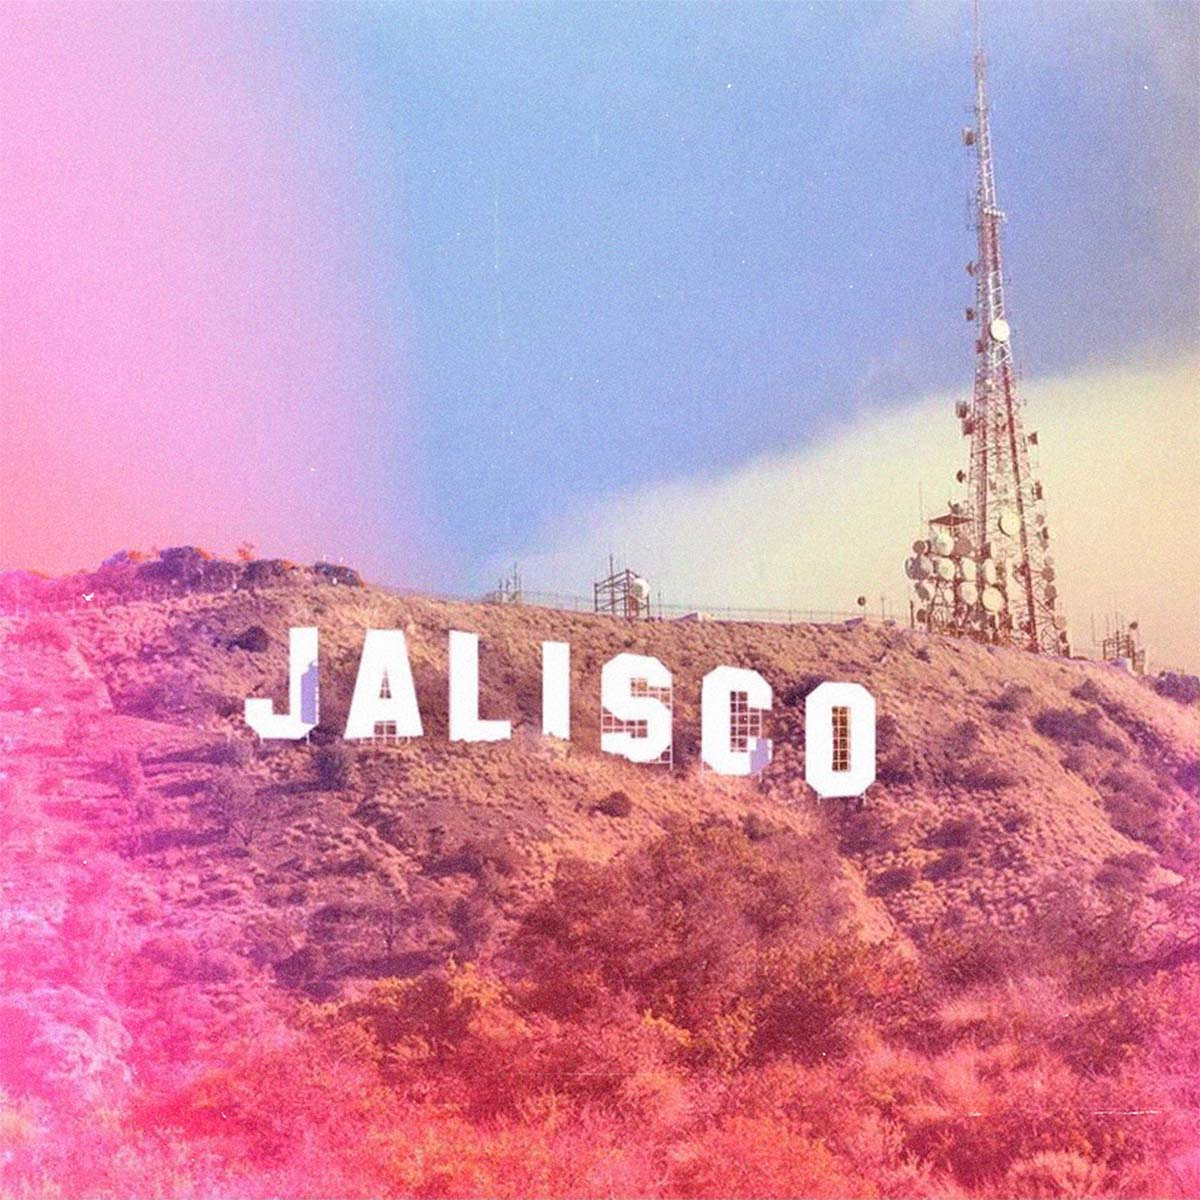 Jalisco sign on a hill